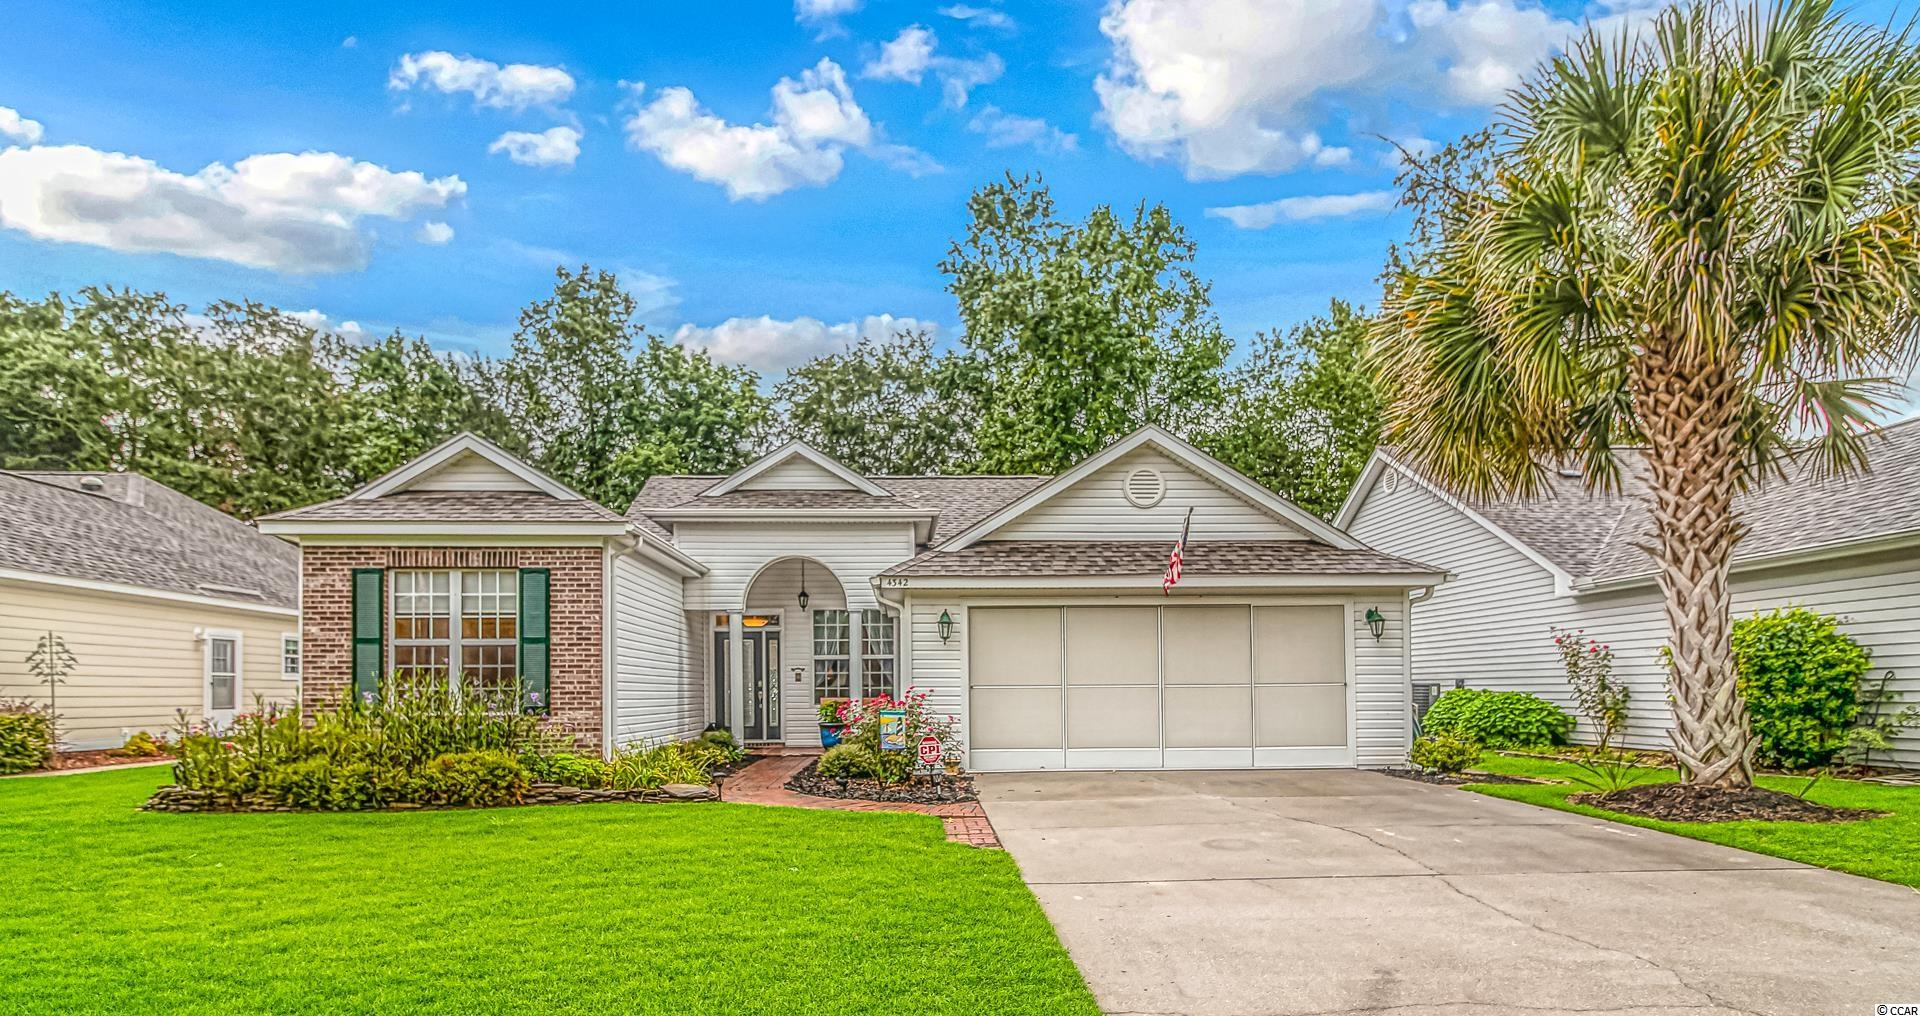 Beautiful views of the golf course and pond from the backyard of this gorgeous 3 bedroom, 2.5 bath home with formal dining room. Located on the 14th fairway, the home boasts a Carrier 3 ton,16 seer HVAC in 2019 and new roof in 2017. From the minute you pull up, you'll notice the lovely curb appeal and landscaping. Step inside the home to find wood flooring extending through the dining room and living room. The dining room is spacious and makes entertaining and gatherings a breeze. The living room has sliders that open onto a large patio--the perfect place for grilling or soaking up the rays. At the back of the house is a large sunroom/den with tall windows overlooking the beautifully landscaped back yard and golf course. The kitchen has been updated with granite countertops, tile backsplash and stainless appliances. Step into the huge master bedroom where you'll find two large closets and an updated bathroom vanity and bench. The front guestroom has it's own on-suite bath for convenience and there is an additional half-bath in the hallway, also with an updated vanity. The third bedroom is currently being used as an office and has great light from the three large windows. A spacious laundry room provides a great place for storage and the garage has enough room for two cars and also features a bump-out extension where you'll find a small workshop. You'll also find a screen pull-down which allows you to close off the garage but leave the garage door open for air-flow. The builder of this home increased the size by 5 ft across the back from what the original plans called for. All this located in the gorgeous Eastport community in Little River. Just minutes  from restaurants, shopping, entertainment, beaches, and all the Grand Strand area has to offer!!